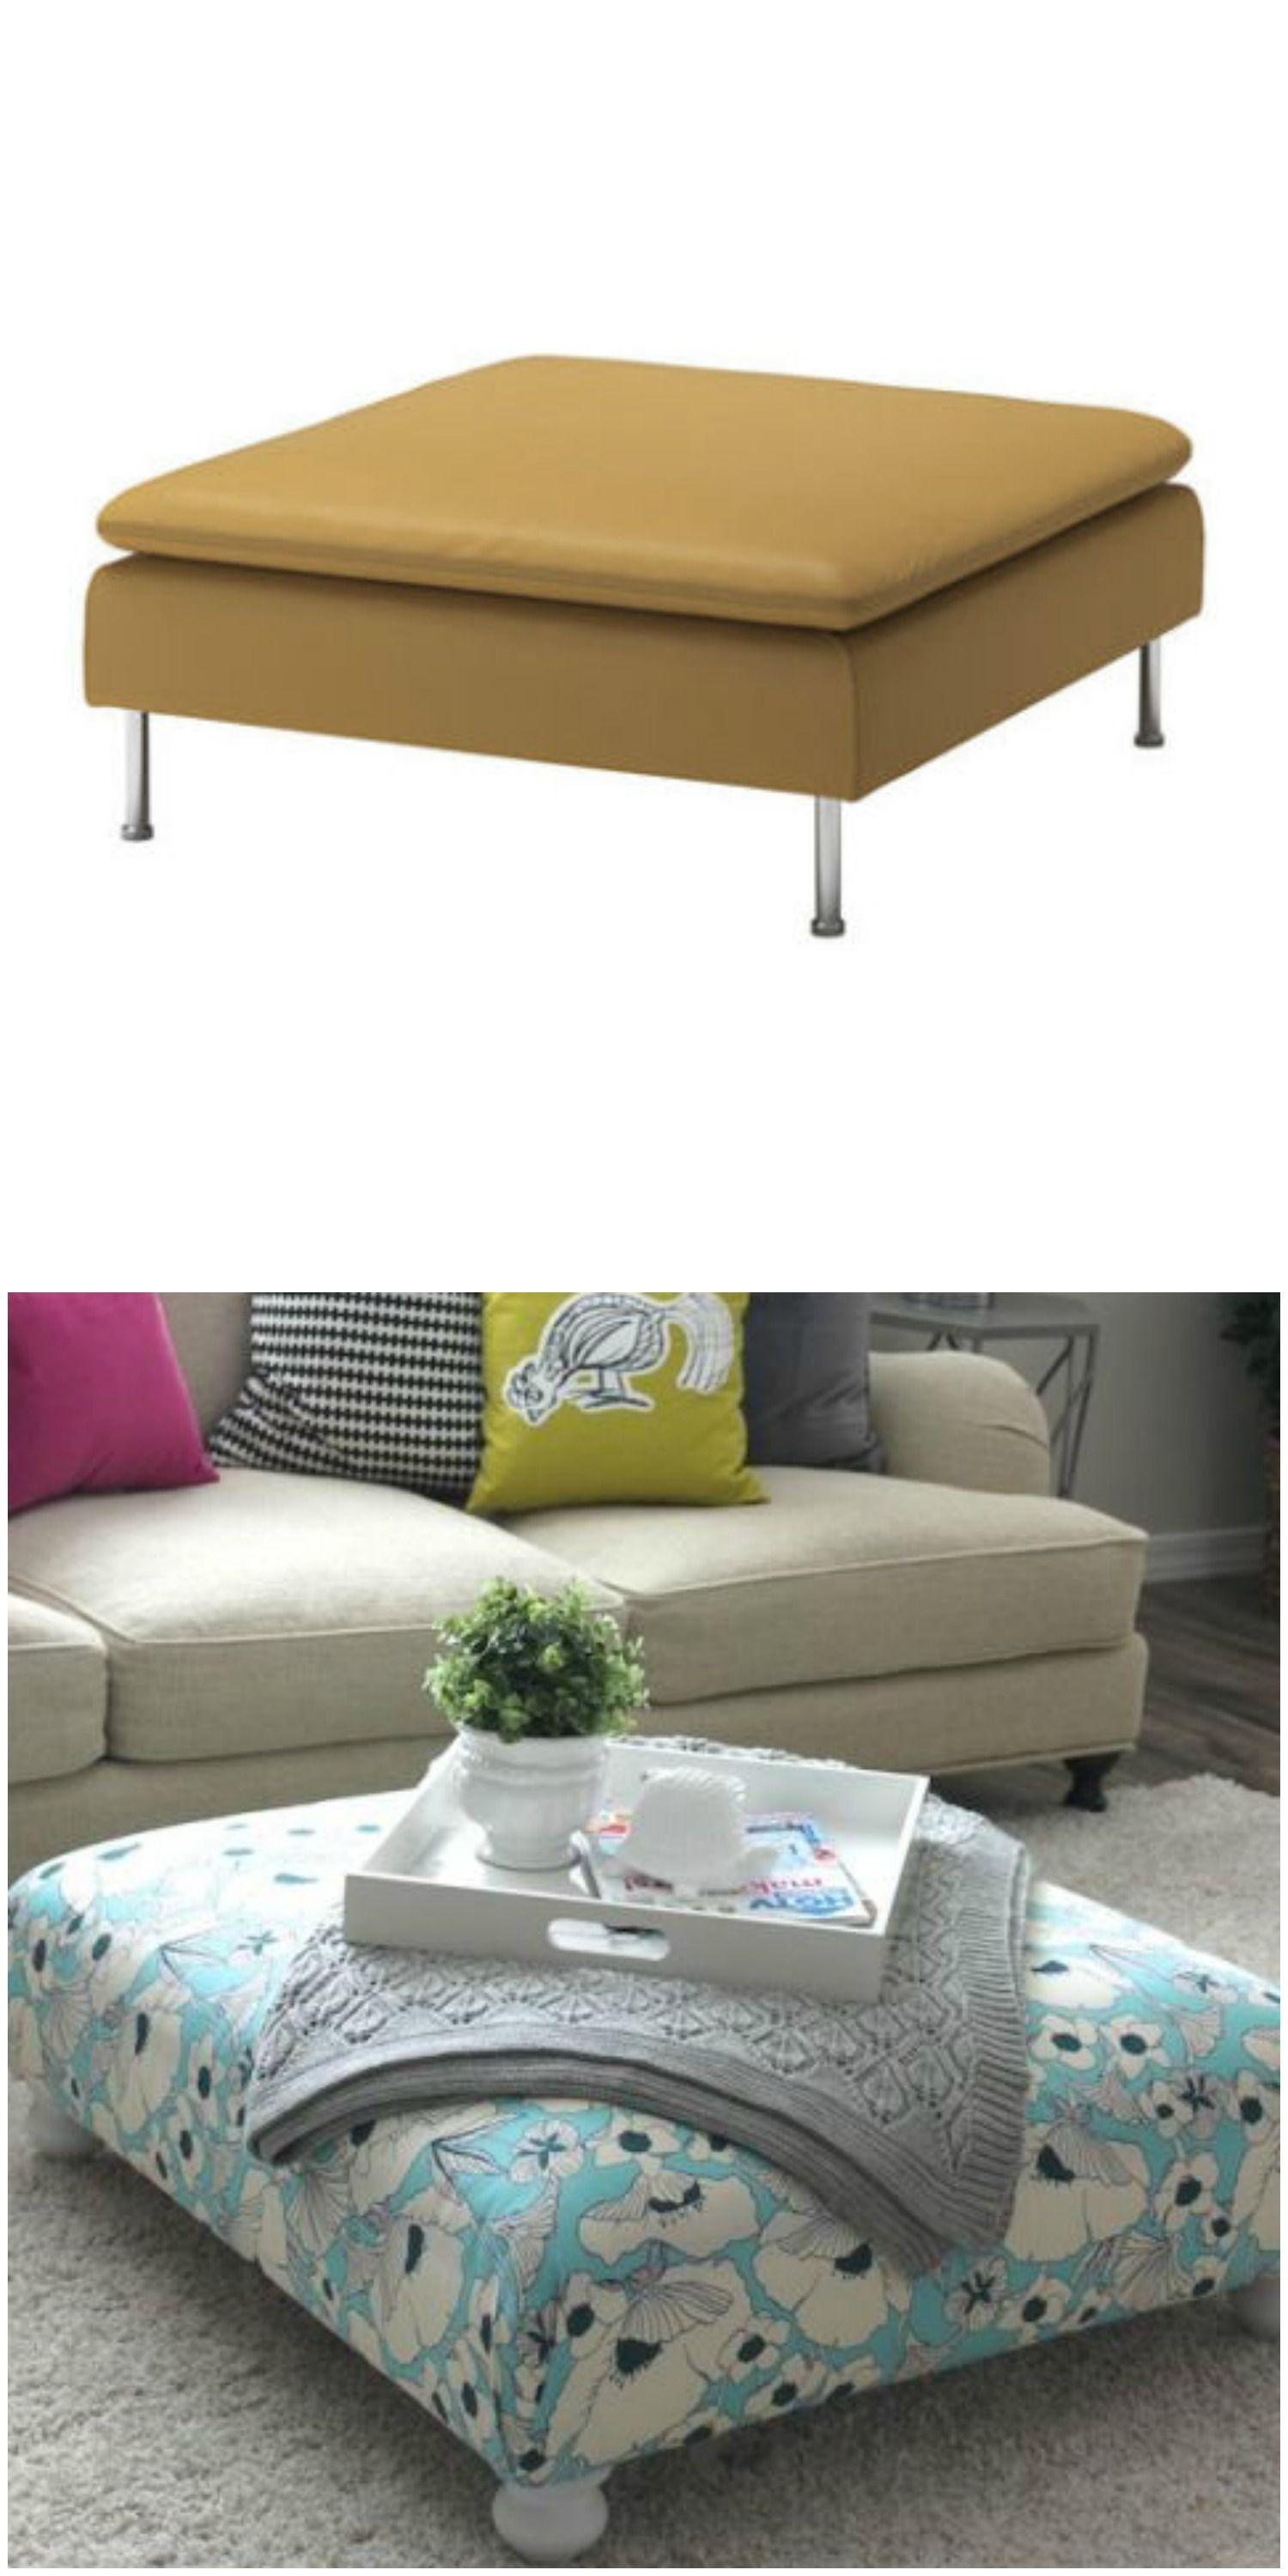 473fb68cfba3df3e94d8001ae3ba422c Top Result 50 Awesome Diy Ottoman Coffee Table Pic 2017 Phe2